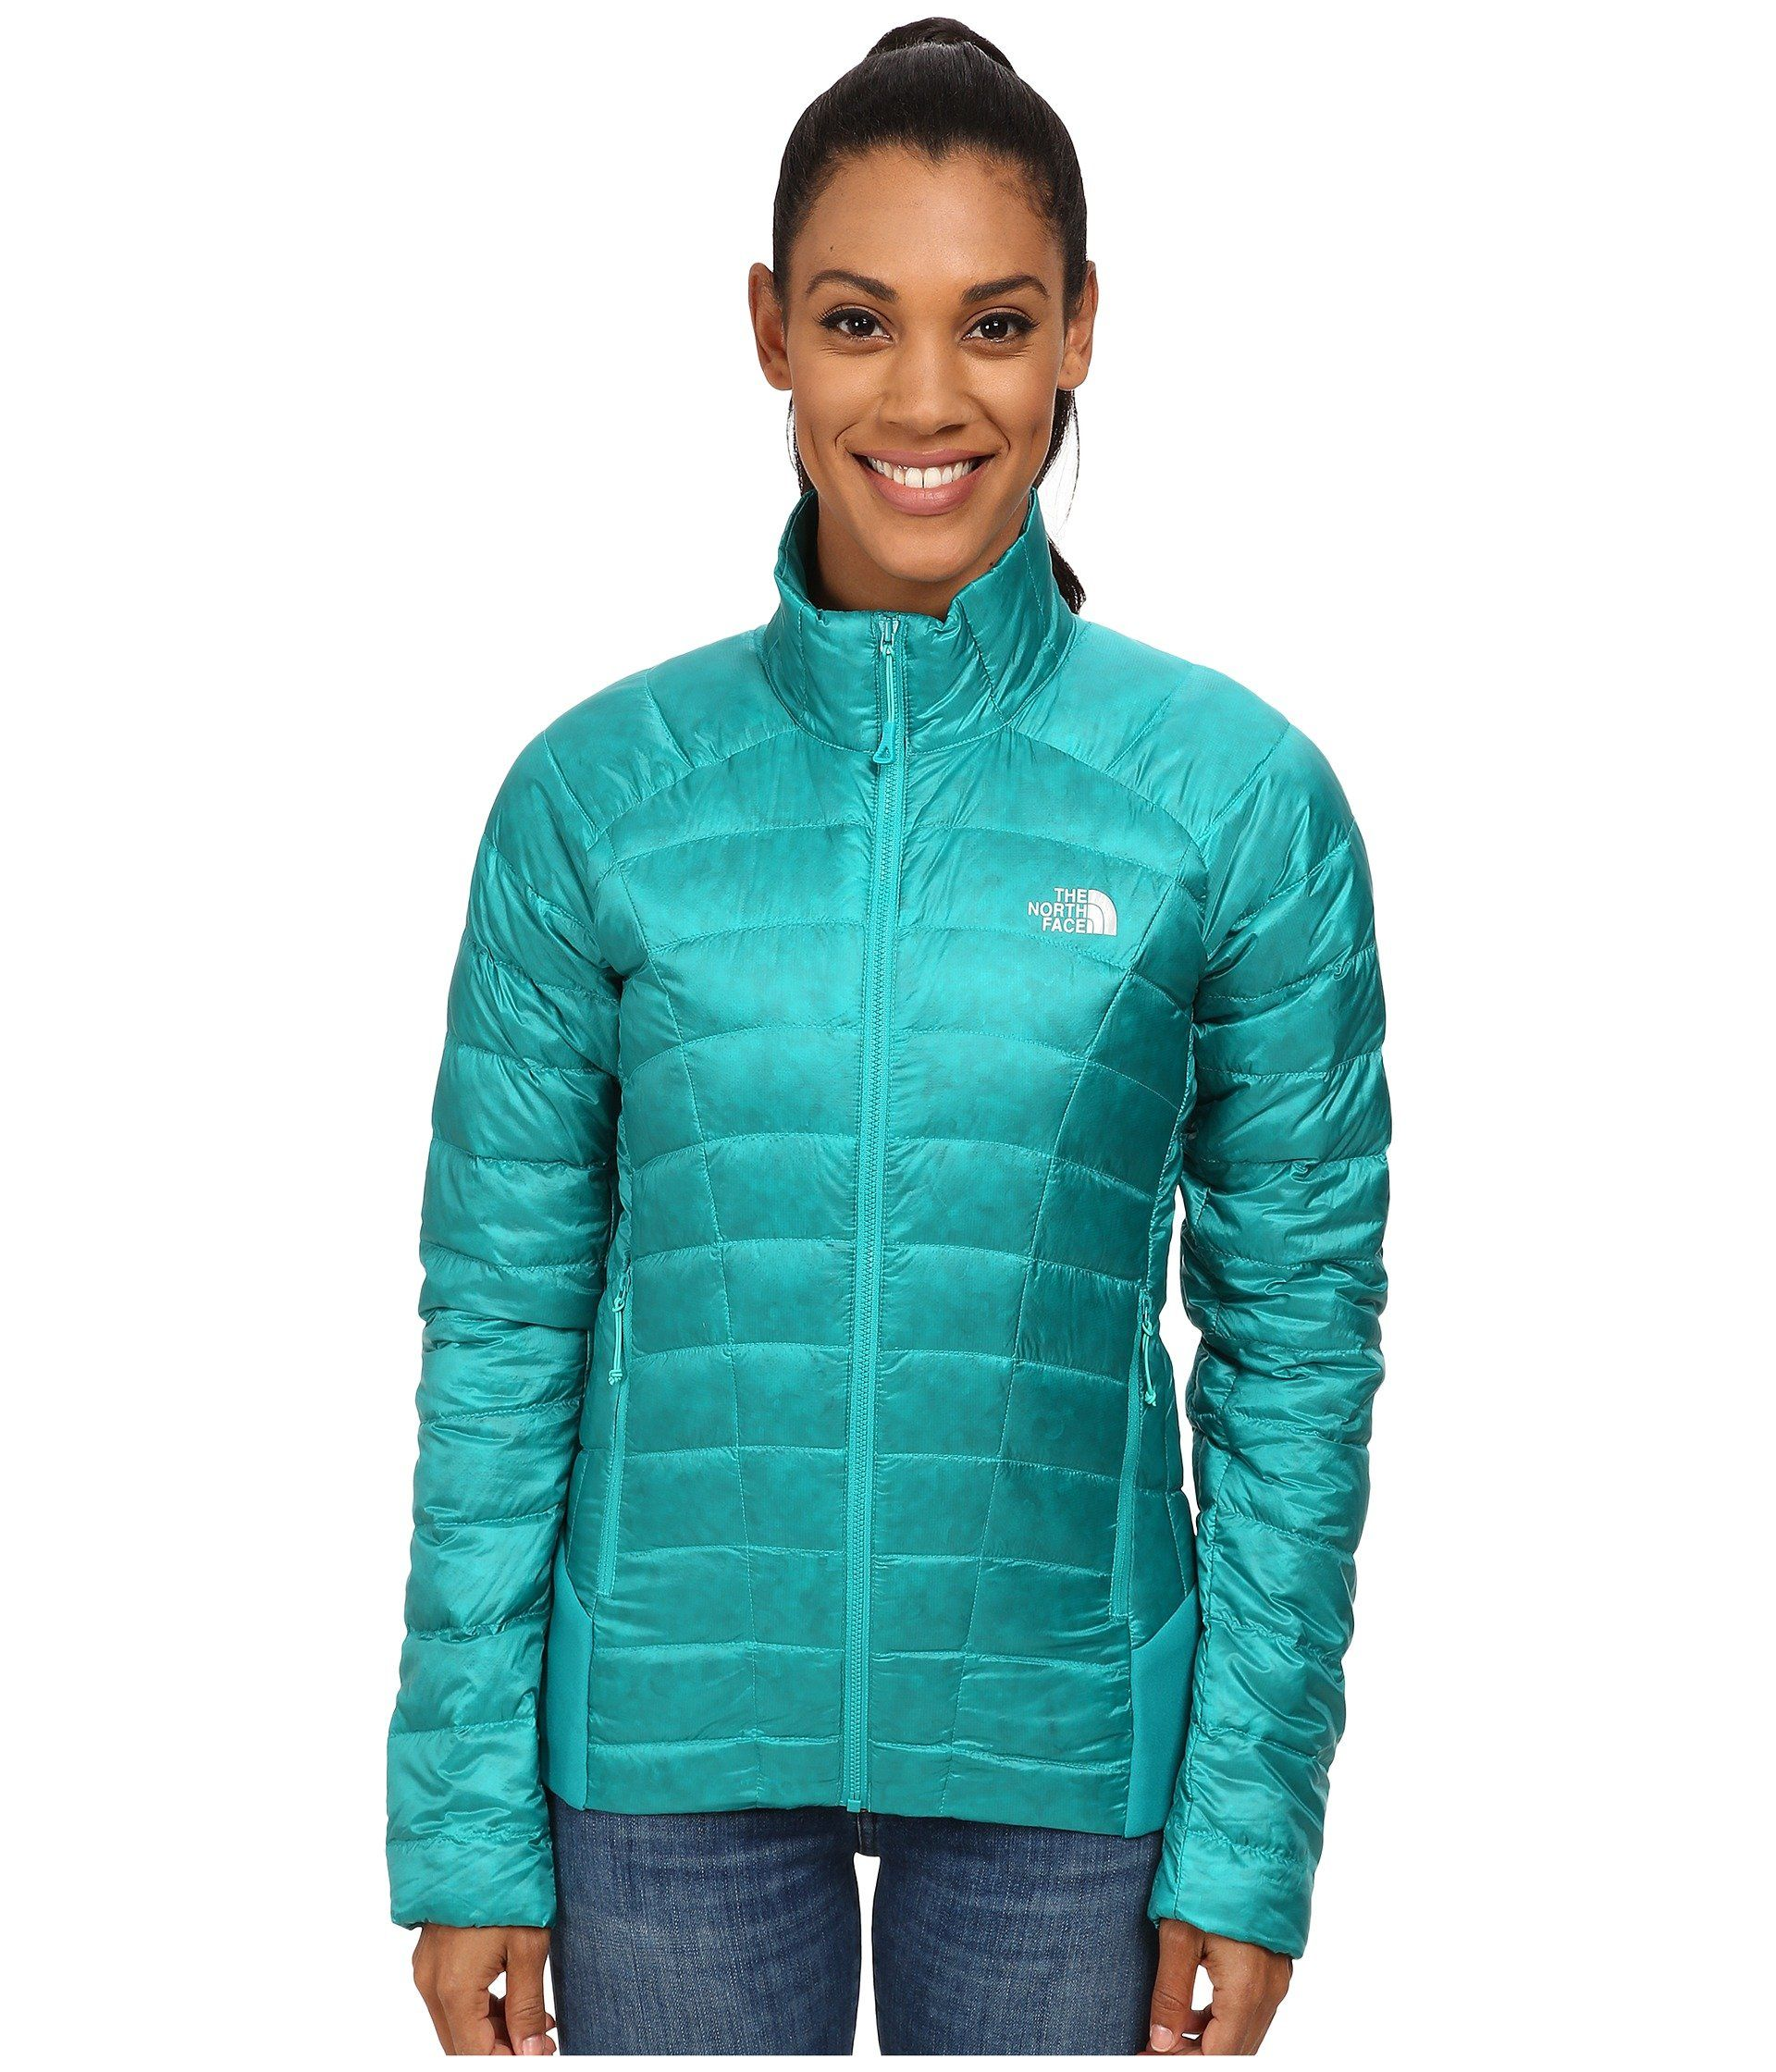 The North Face Women S Quince Down Jacket Kokomo Green X Large Lightweight Highly Compressible And Insulating The North Face Women Jackets Coats For Women [ 2240 x 1920 Pixel ]